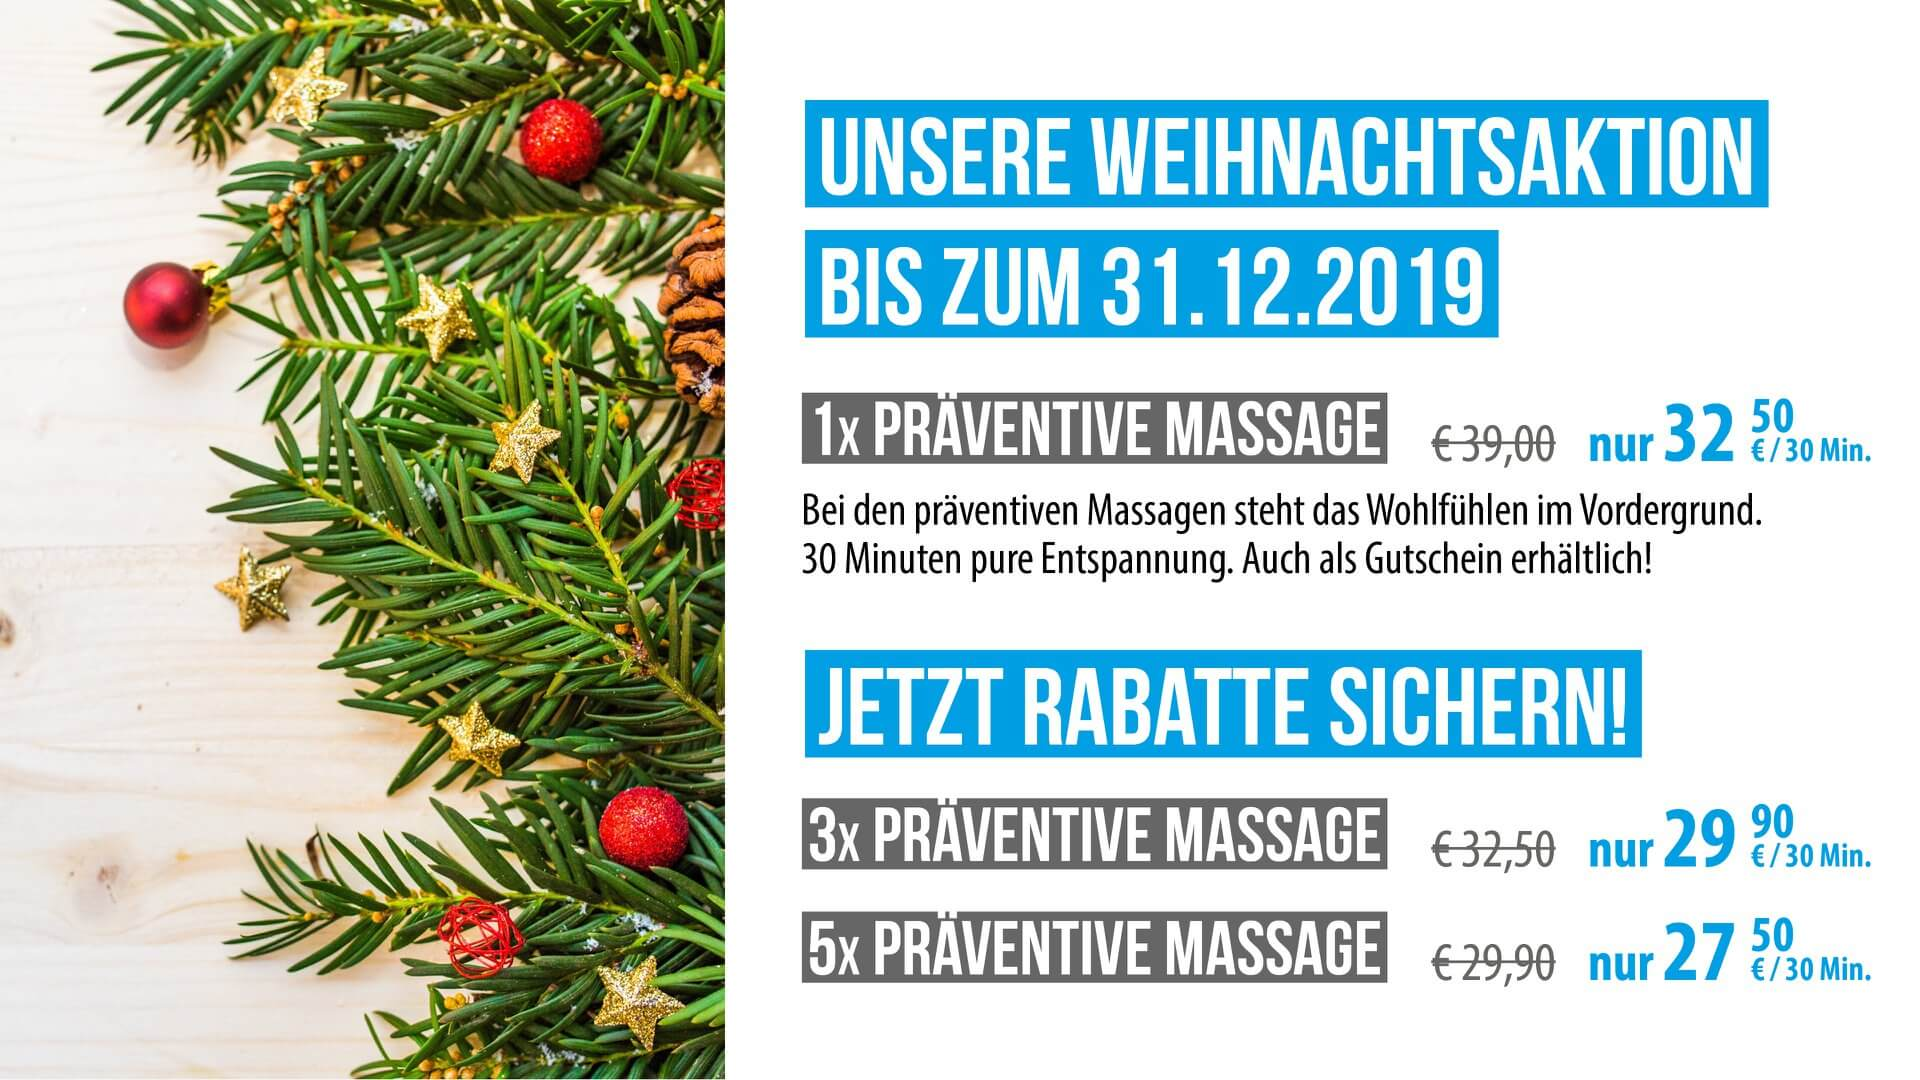 Fusion5 Physiotherapie : Weihnachtsangebot 2019